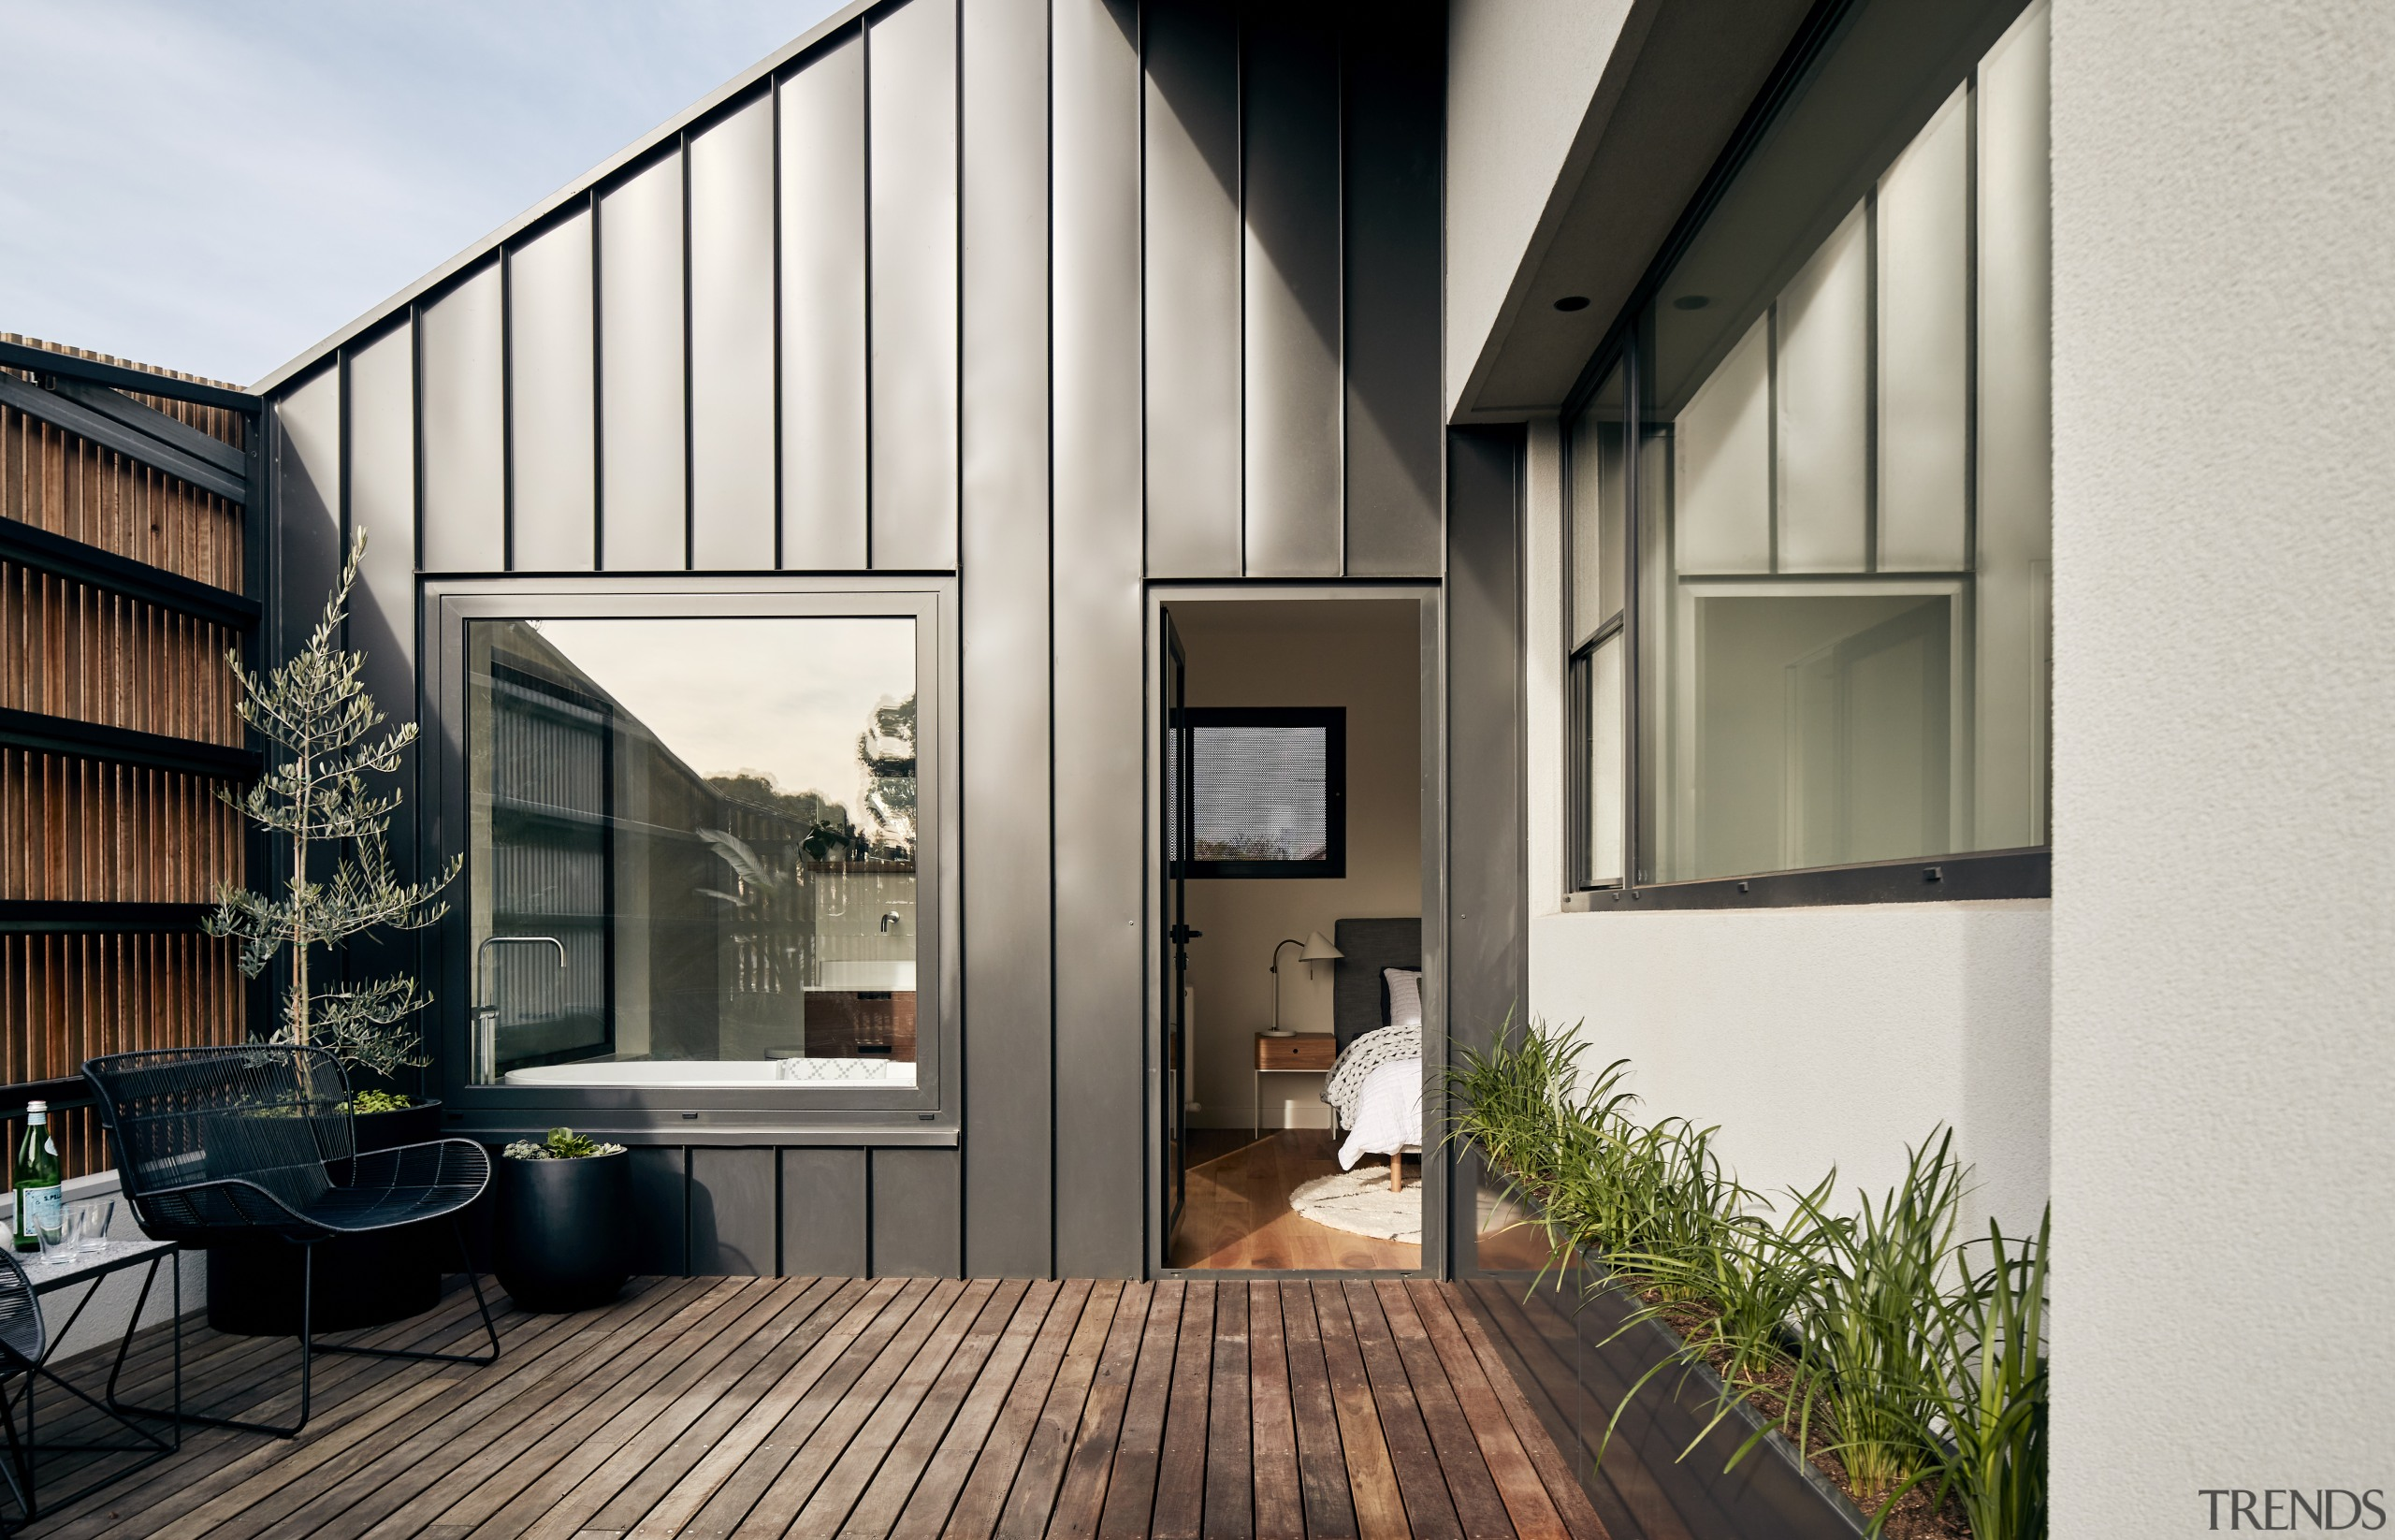 The lines of the standing seam cladding work apartment, architecture, building, ceiling, courtyard, daylighting, facade, floor, hardwood, home, house, interior design, loft, property, real estate, residential area, roof, room, siding, wall, window, wood, white, black